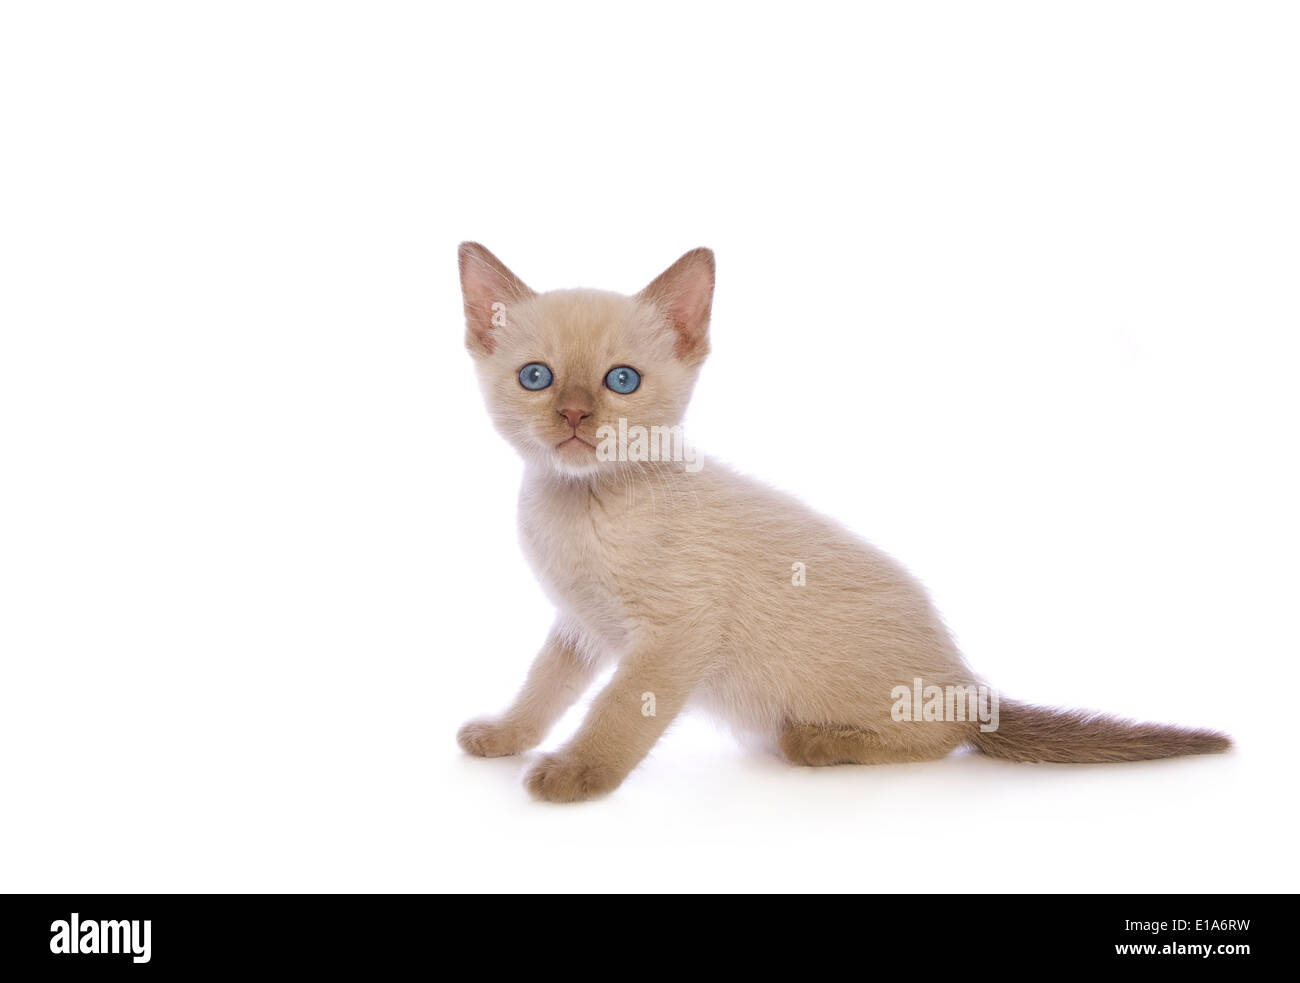 Cute chocolate point non standard Munchkin kitten isolated on white background - Stock Image